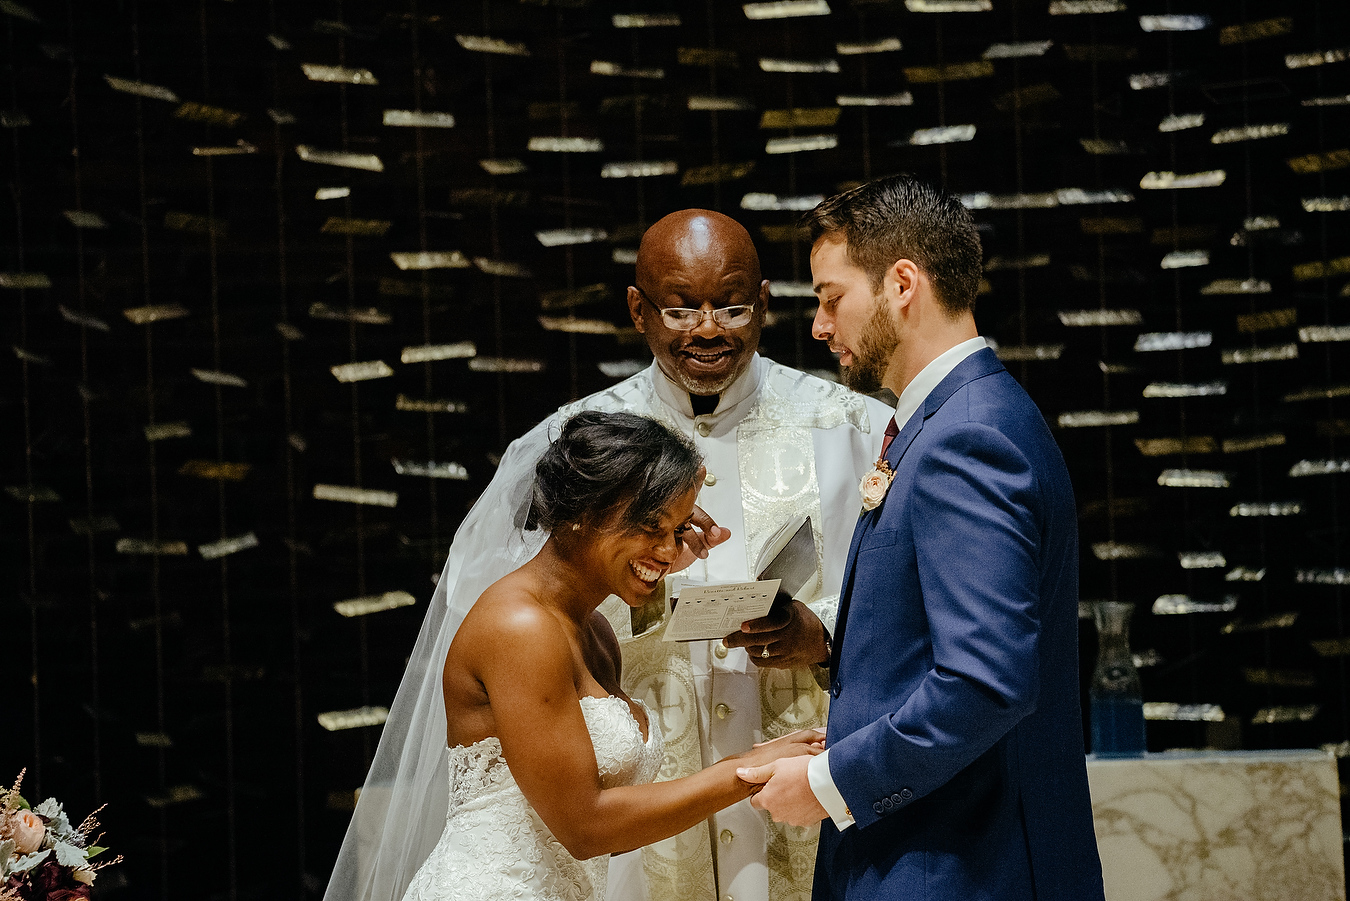 planning your wedding at the MIT CHAPEL